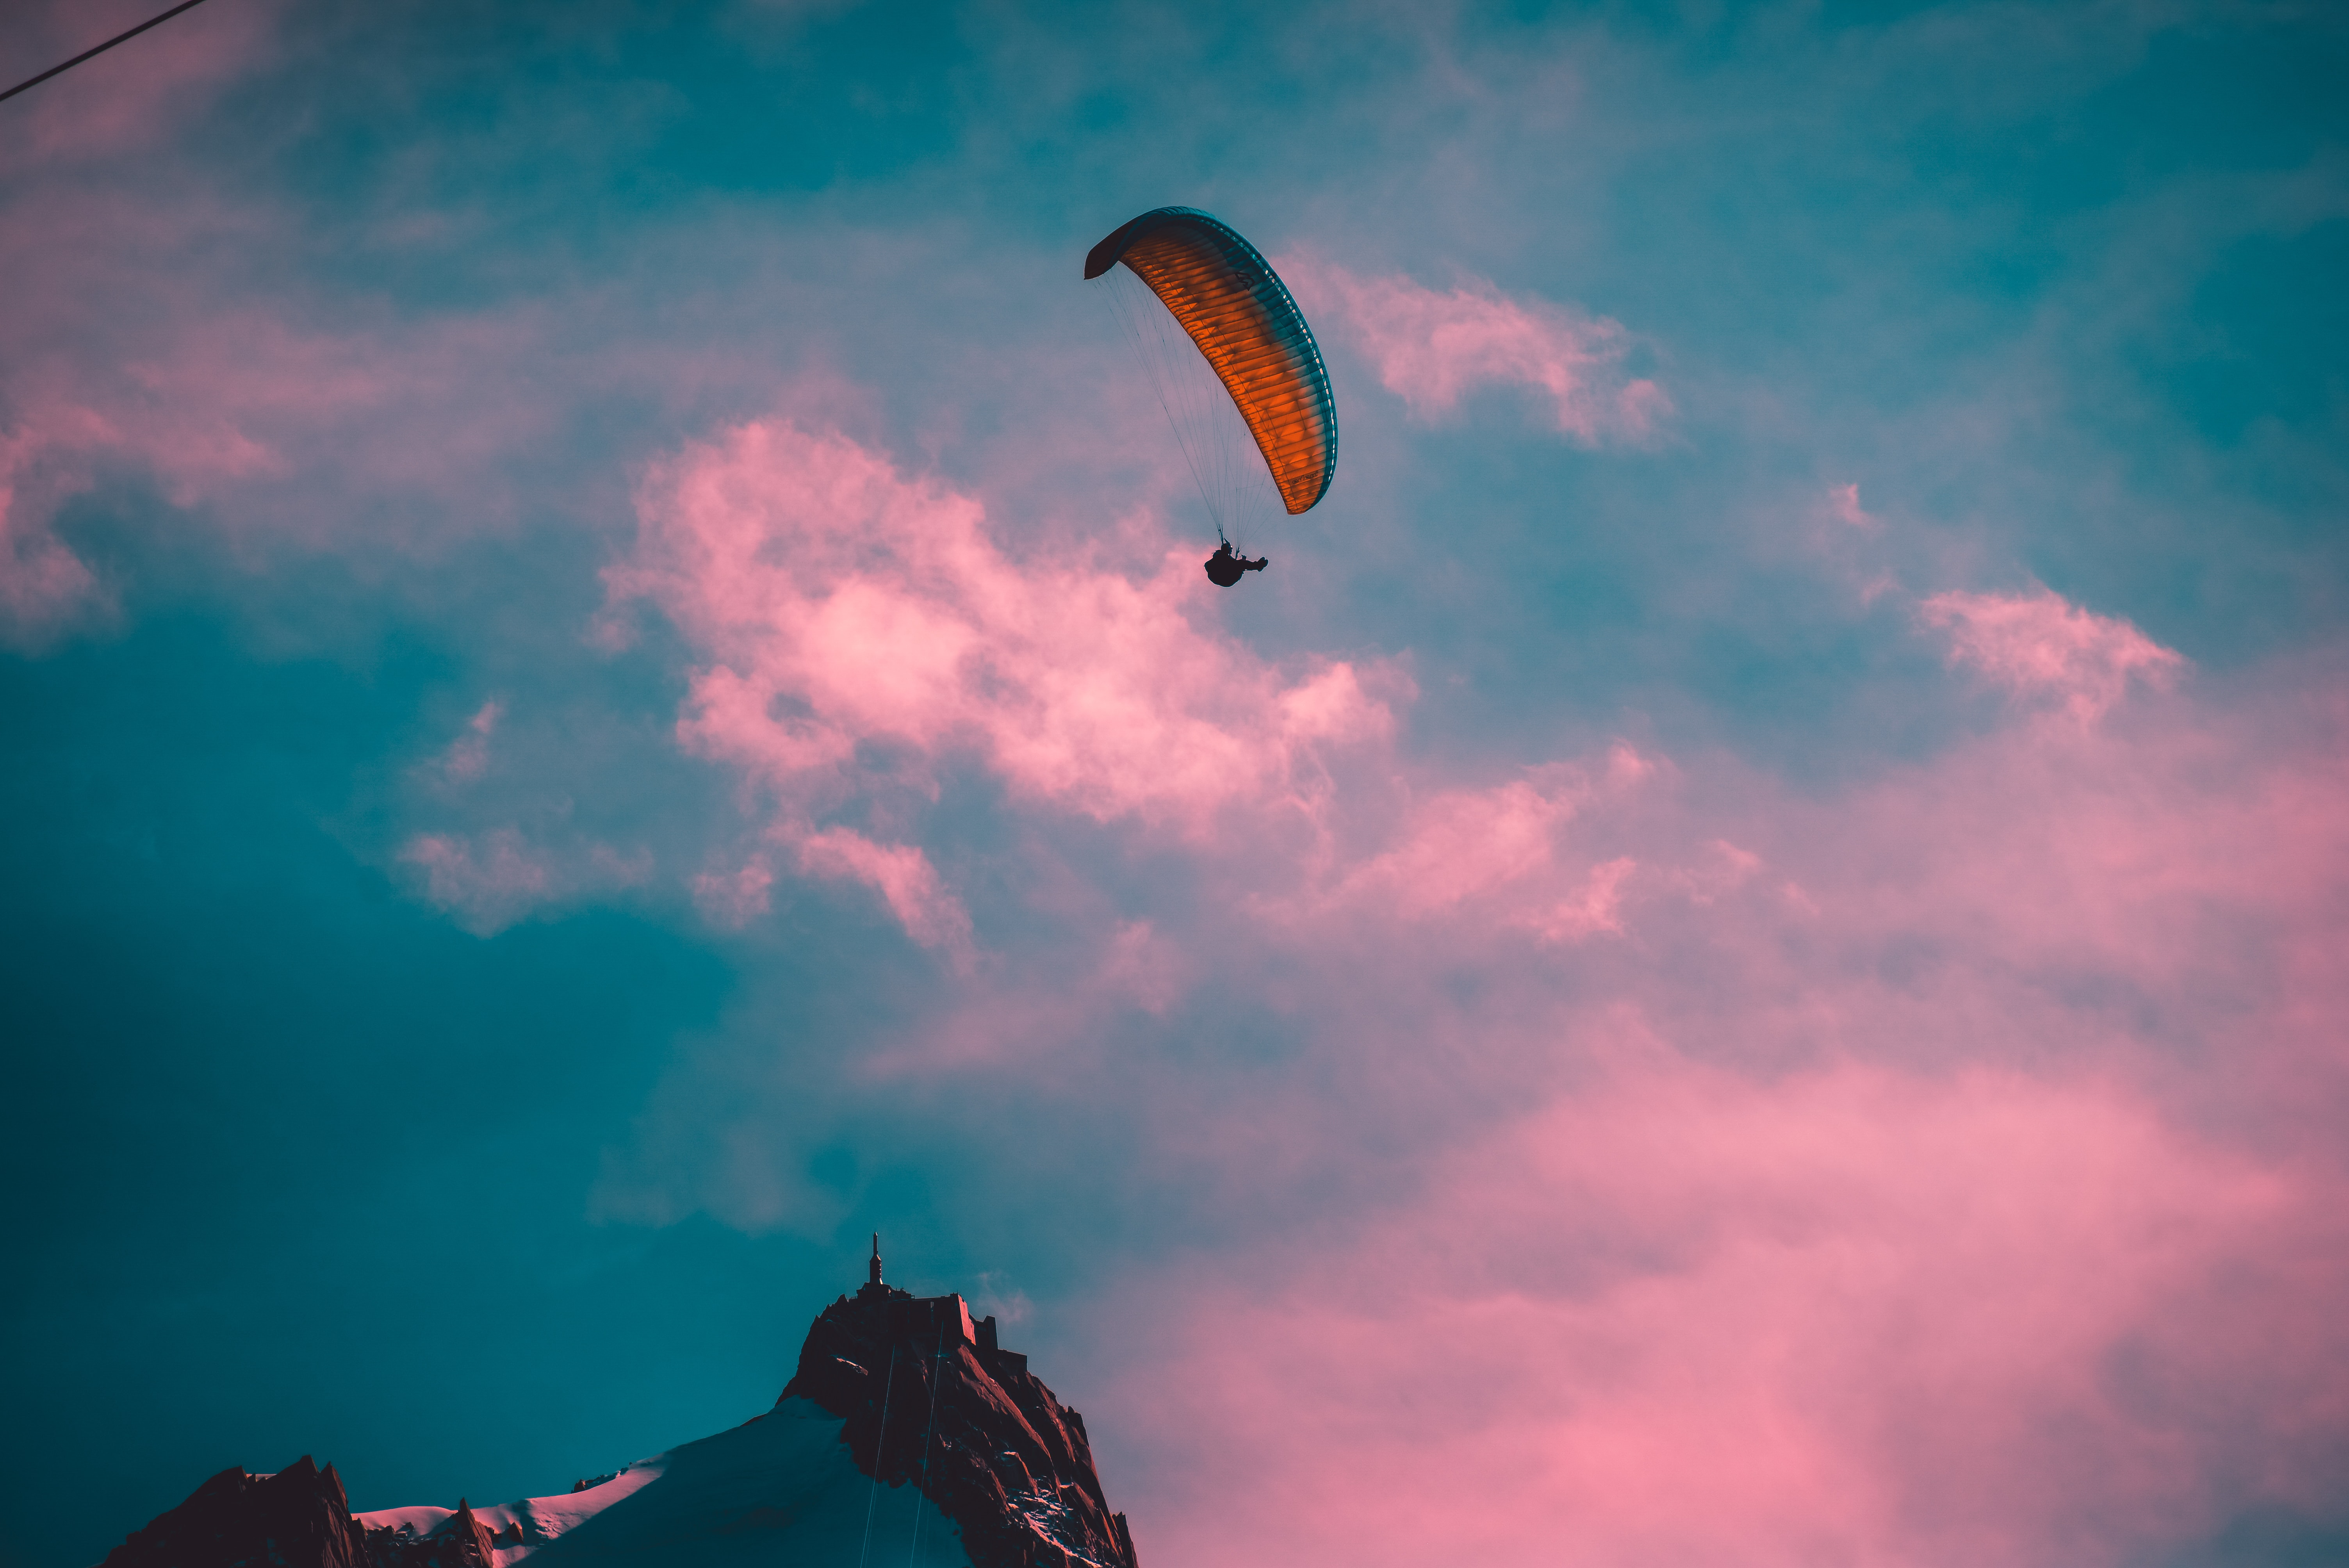 A paraglider in the air - Goal Success Program